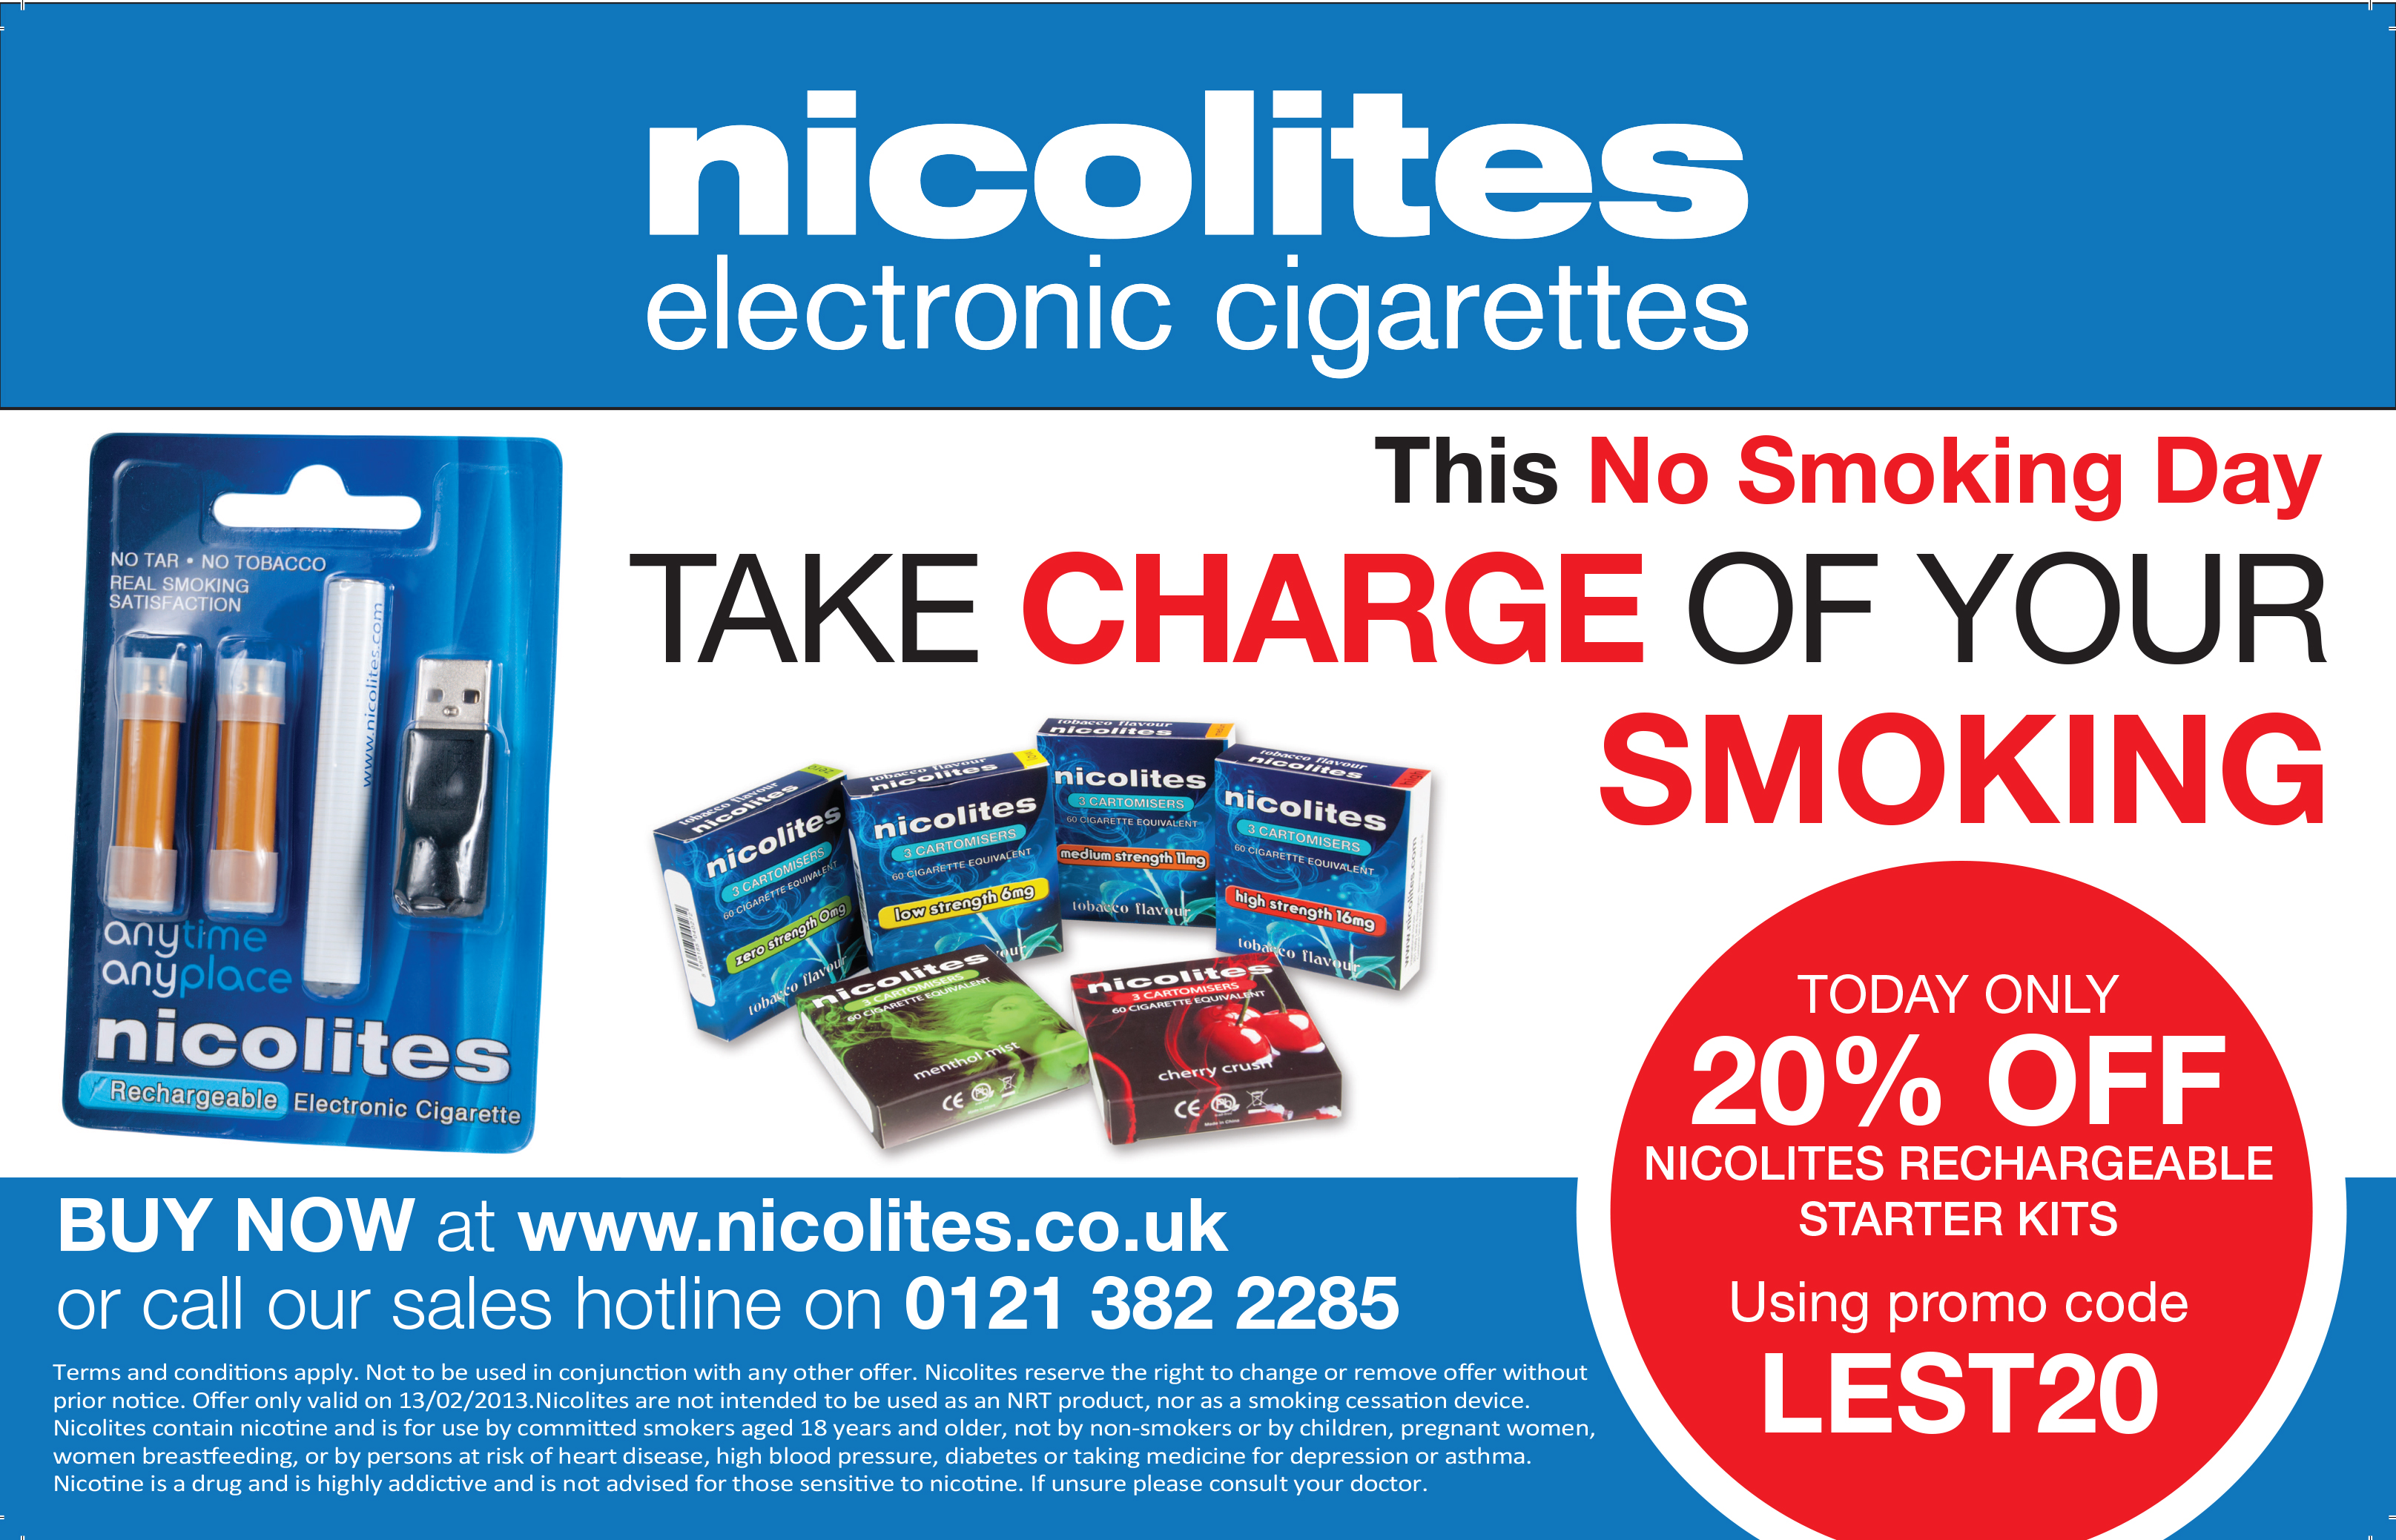 Nicolites Press advert for non smoking day